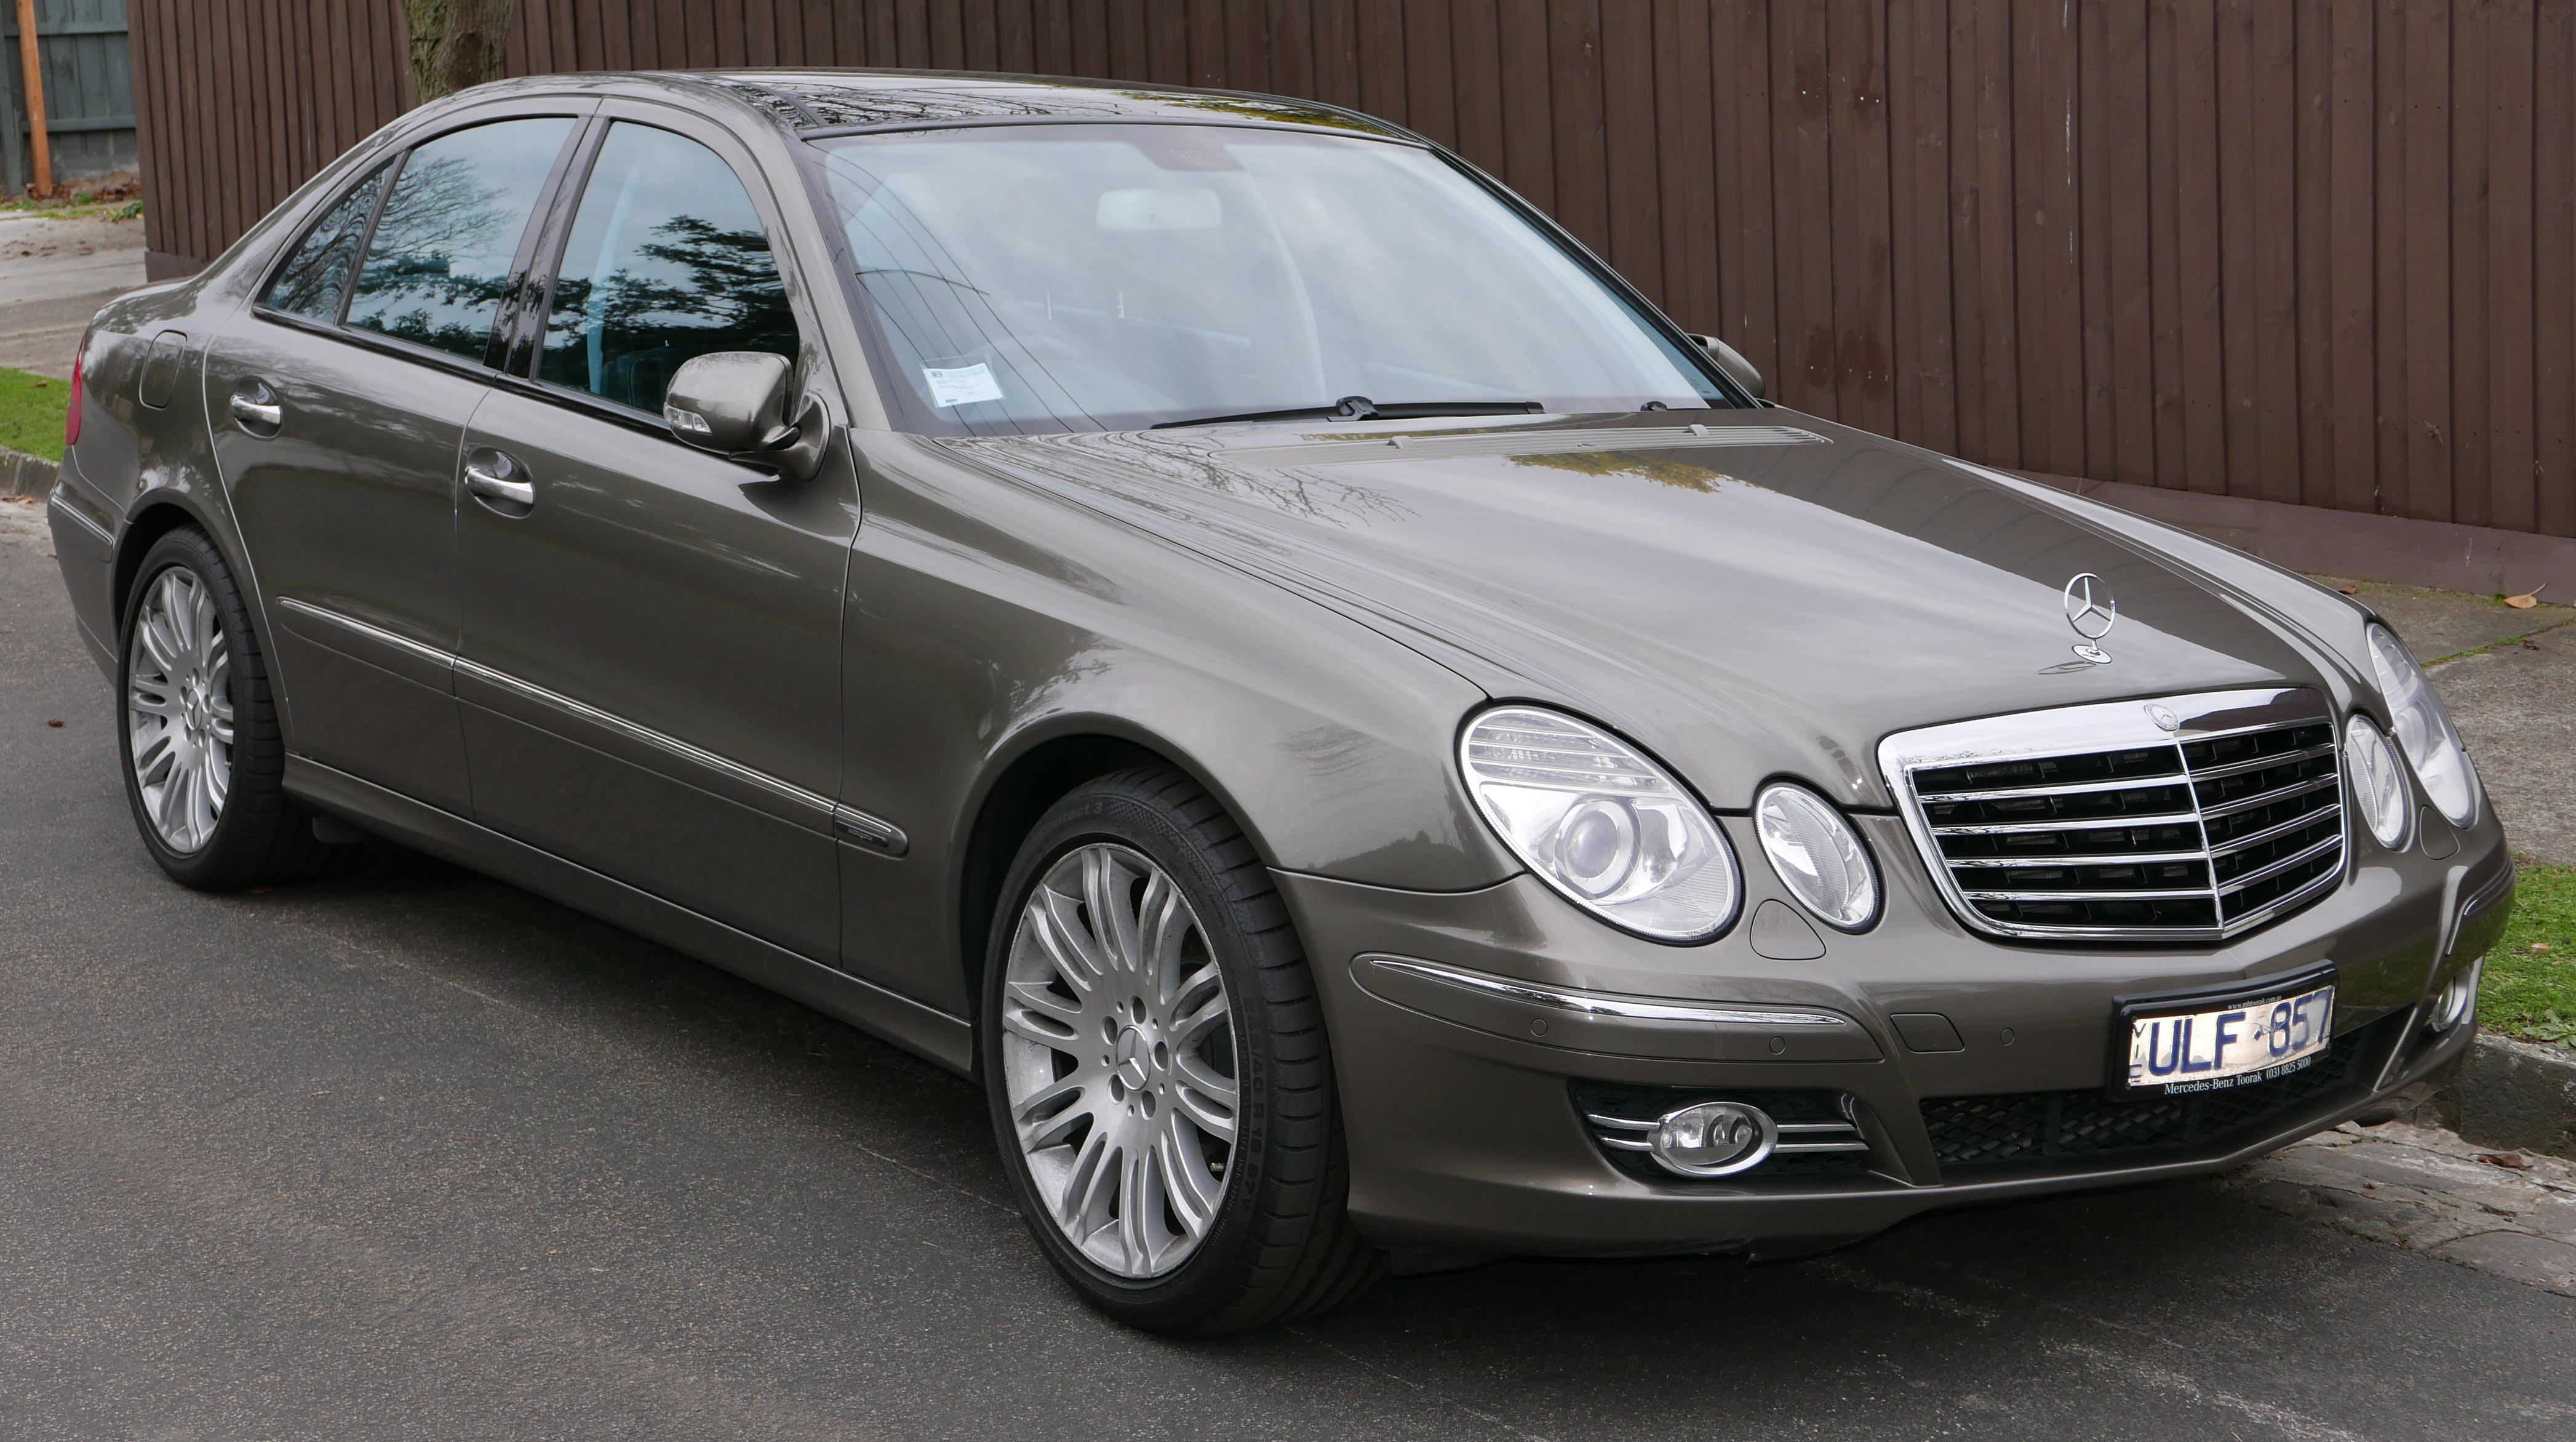 file 2006 mercedes benz e 500 w 211 my07 avantgarde sedan 2015 07 09 wikimedia commons. Black Bedroom Furniture Sets. Home Design Ideas